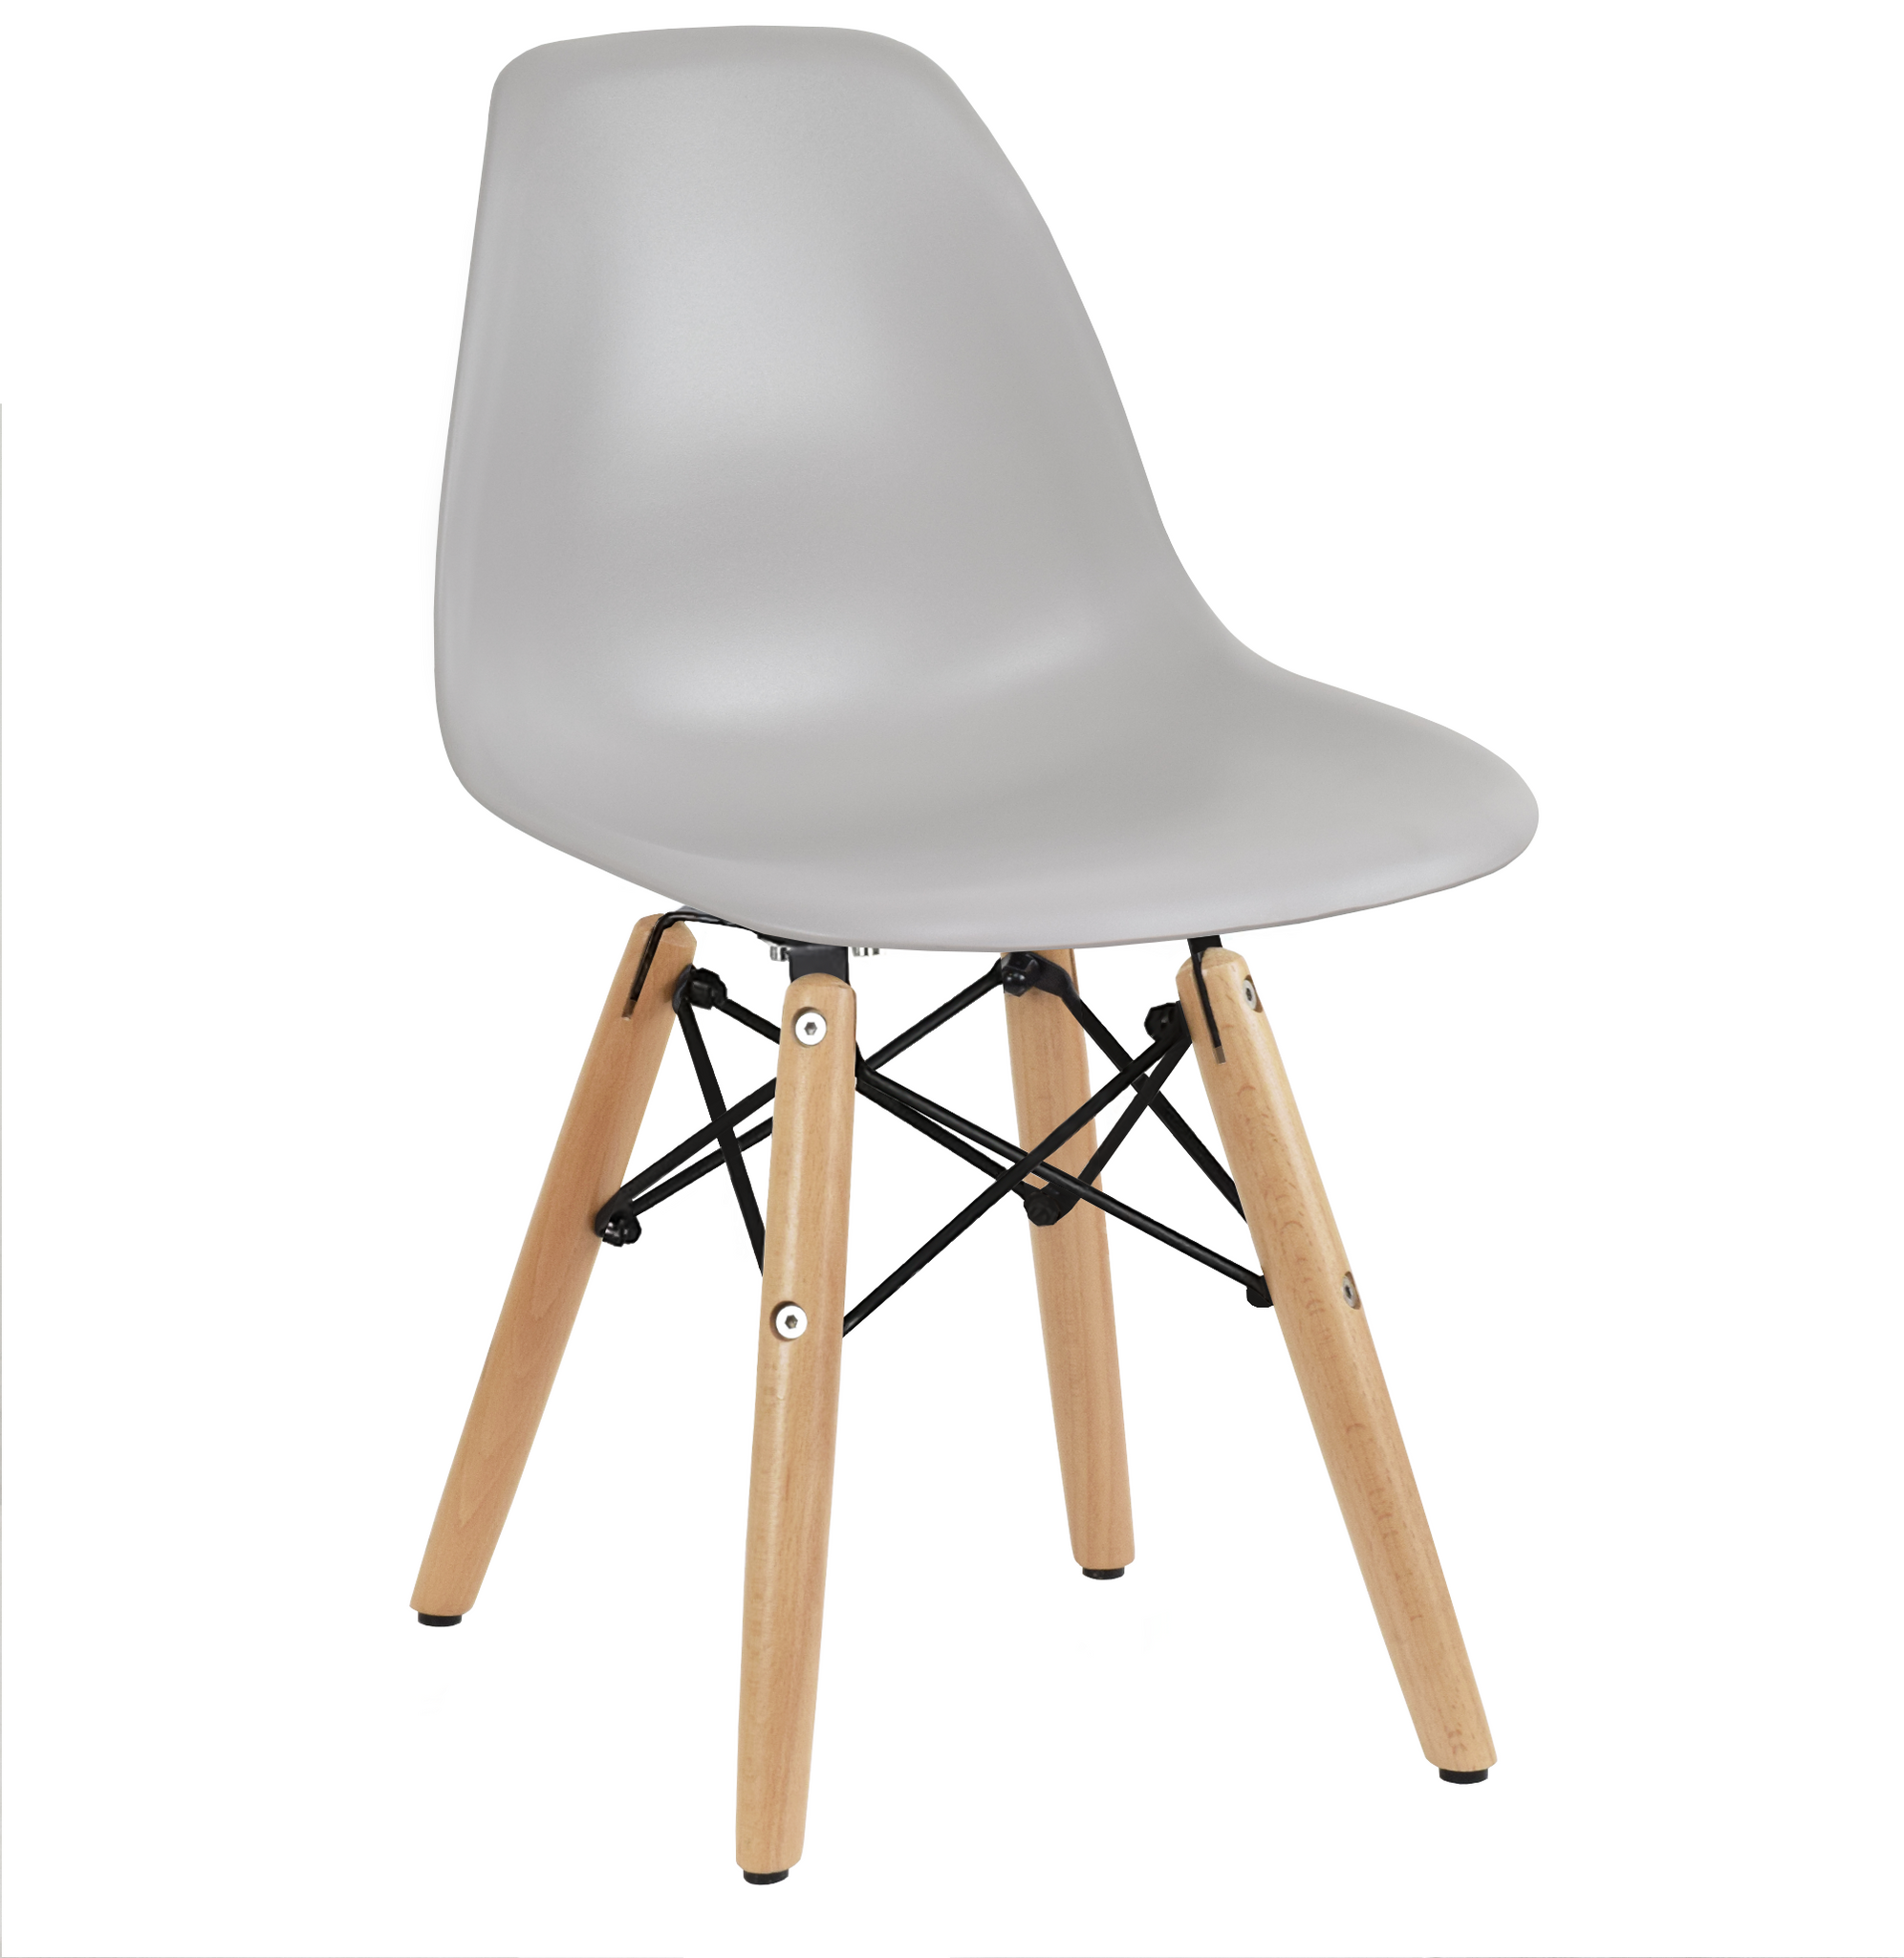 Kids Size Grey Plastic Mid Century Chair with Wood Legs